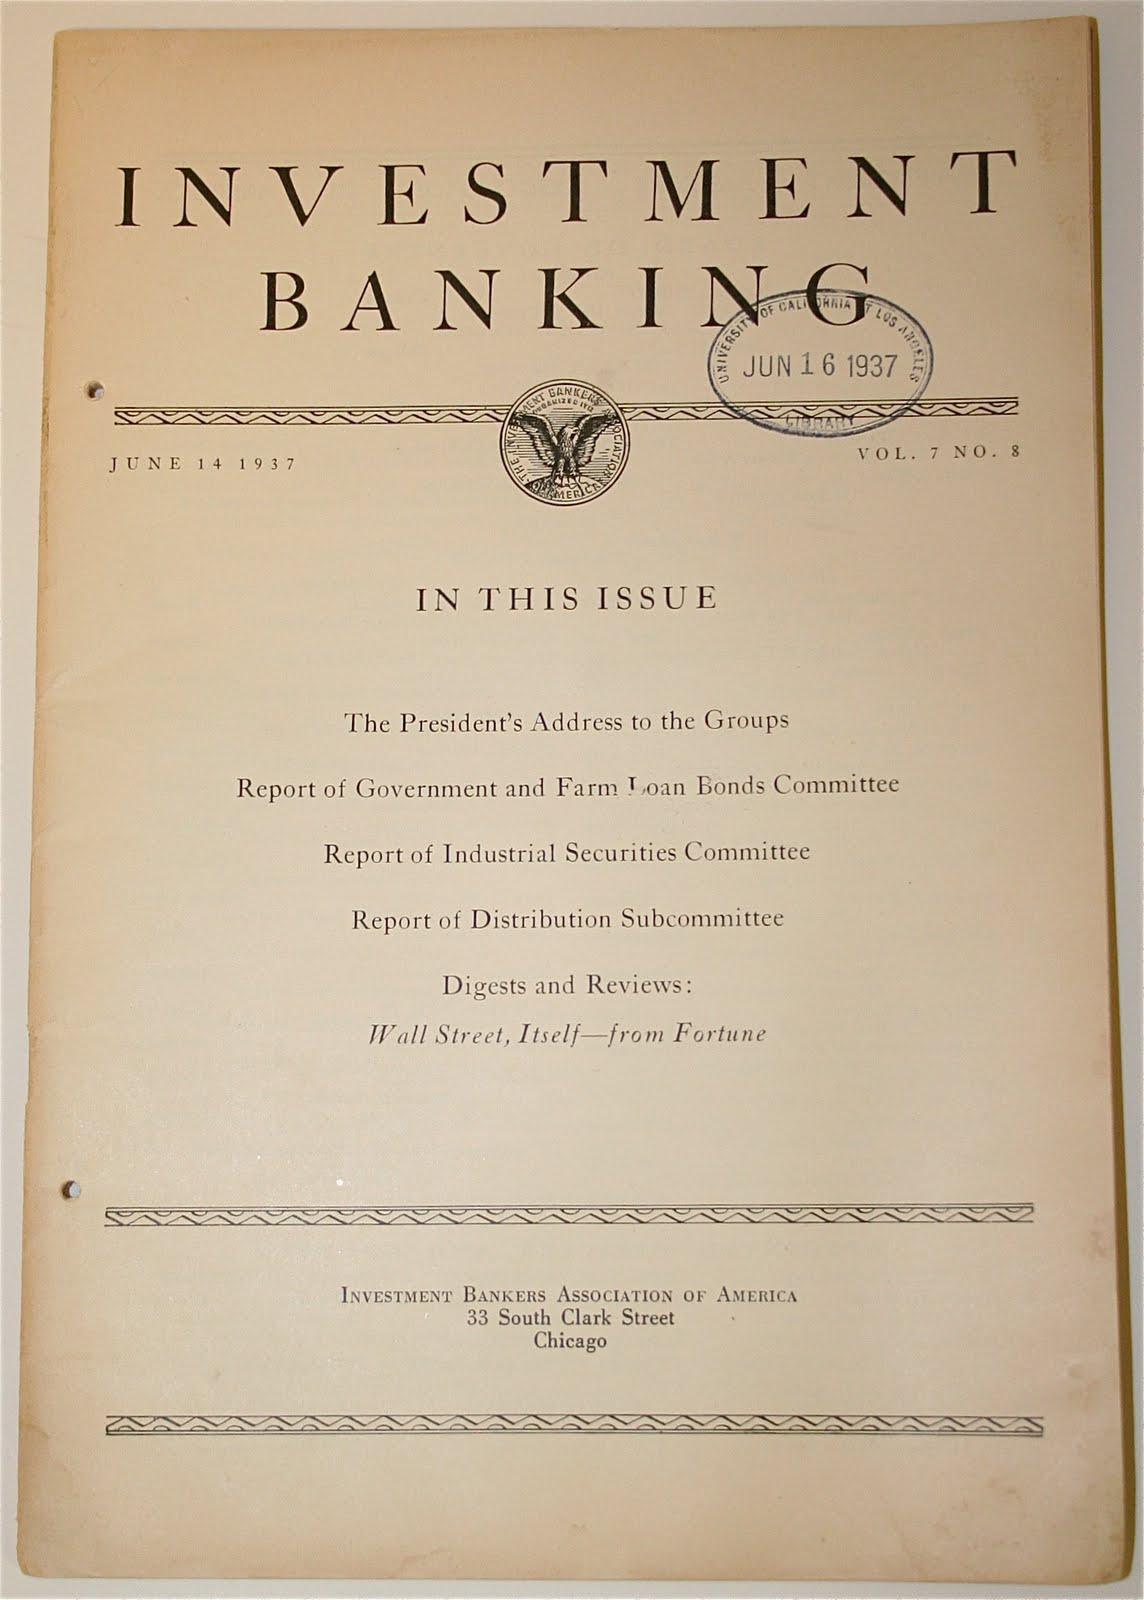 Investment Banker Haircut : ... 14, 1937, Vol. 7, No. 8 by Investment Bankers Association of America